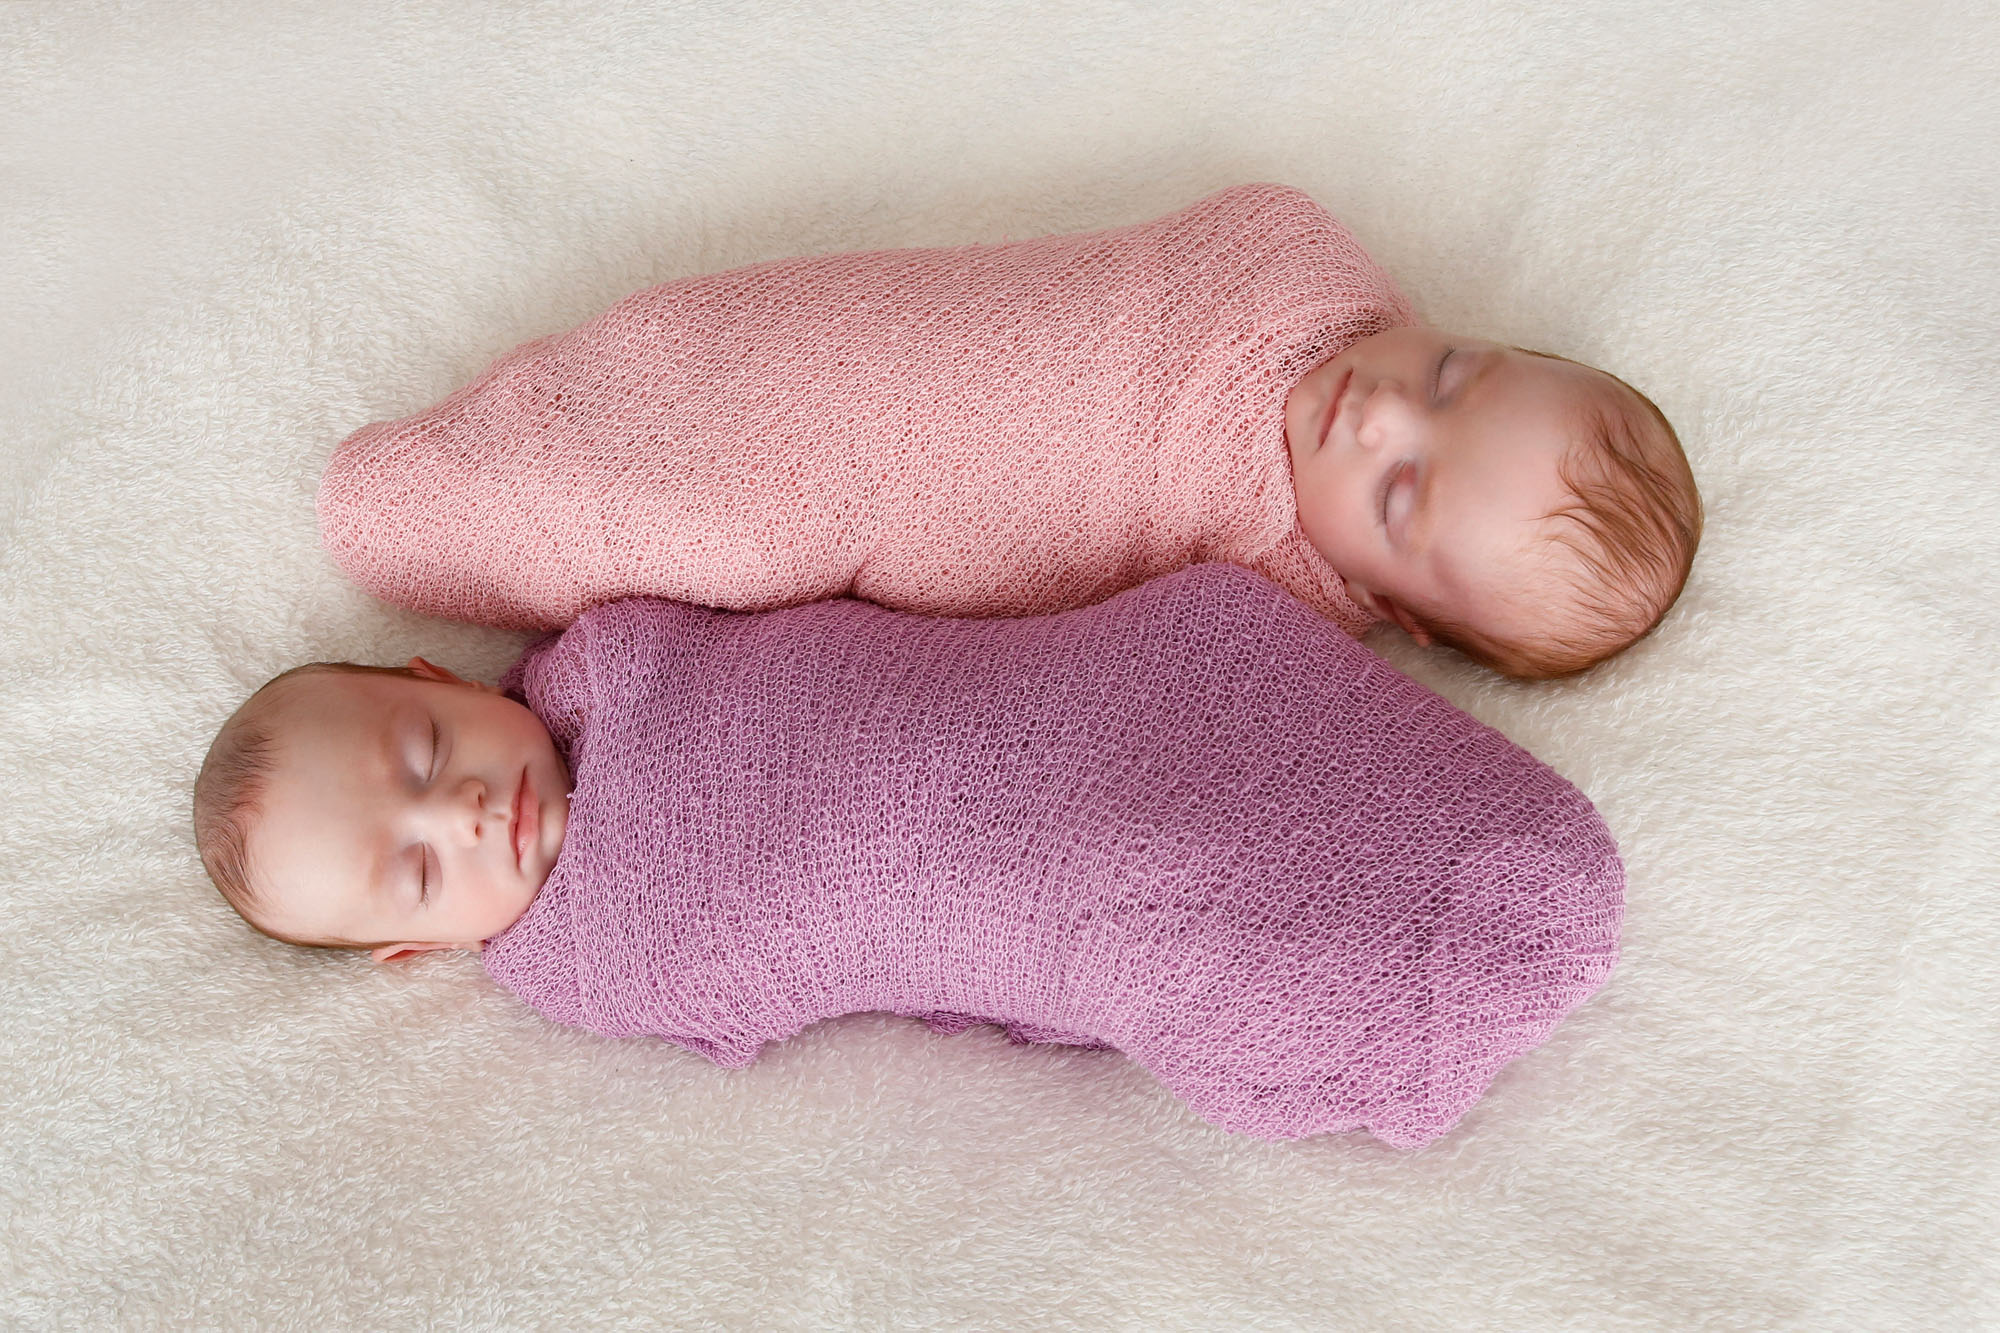 newborn-photography-berkshire-hampshire-06.jpg